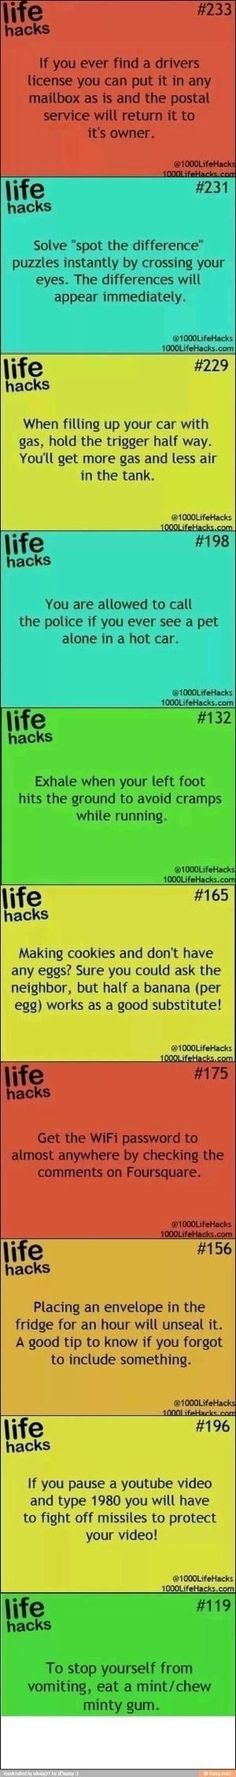 Endless Life Hacks: Life Hacks - Life hacks by ellen